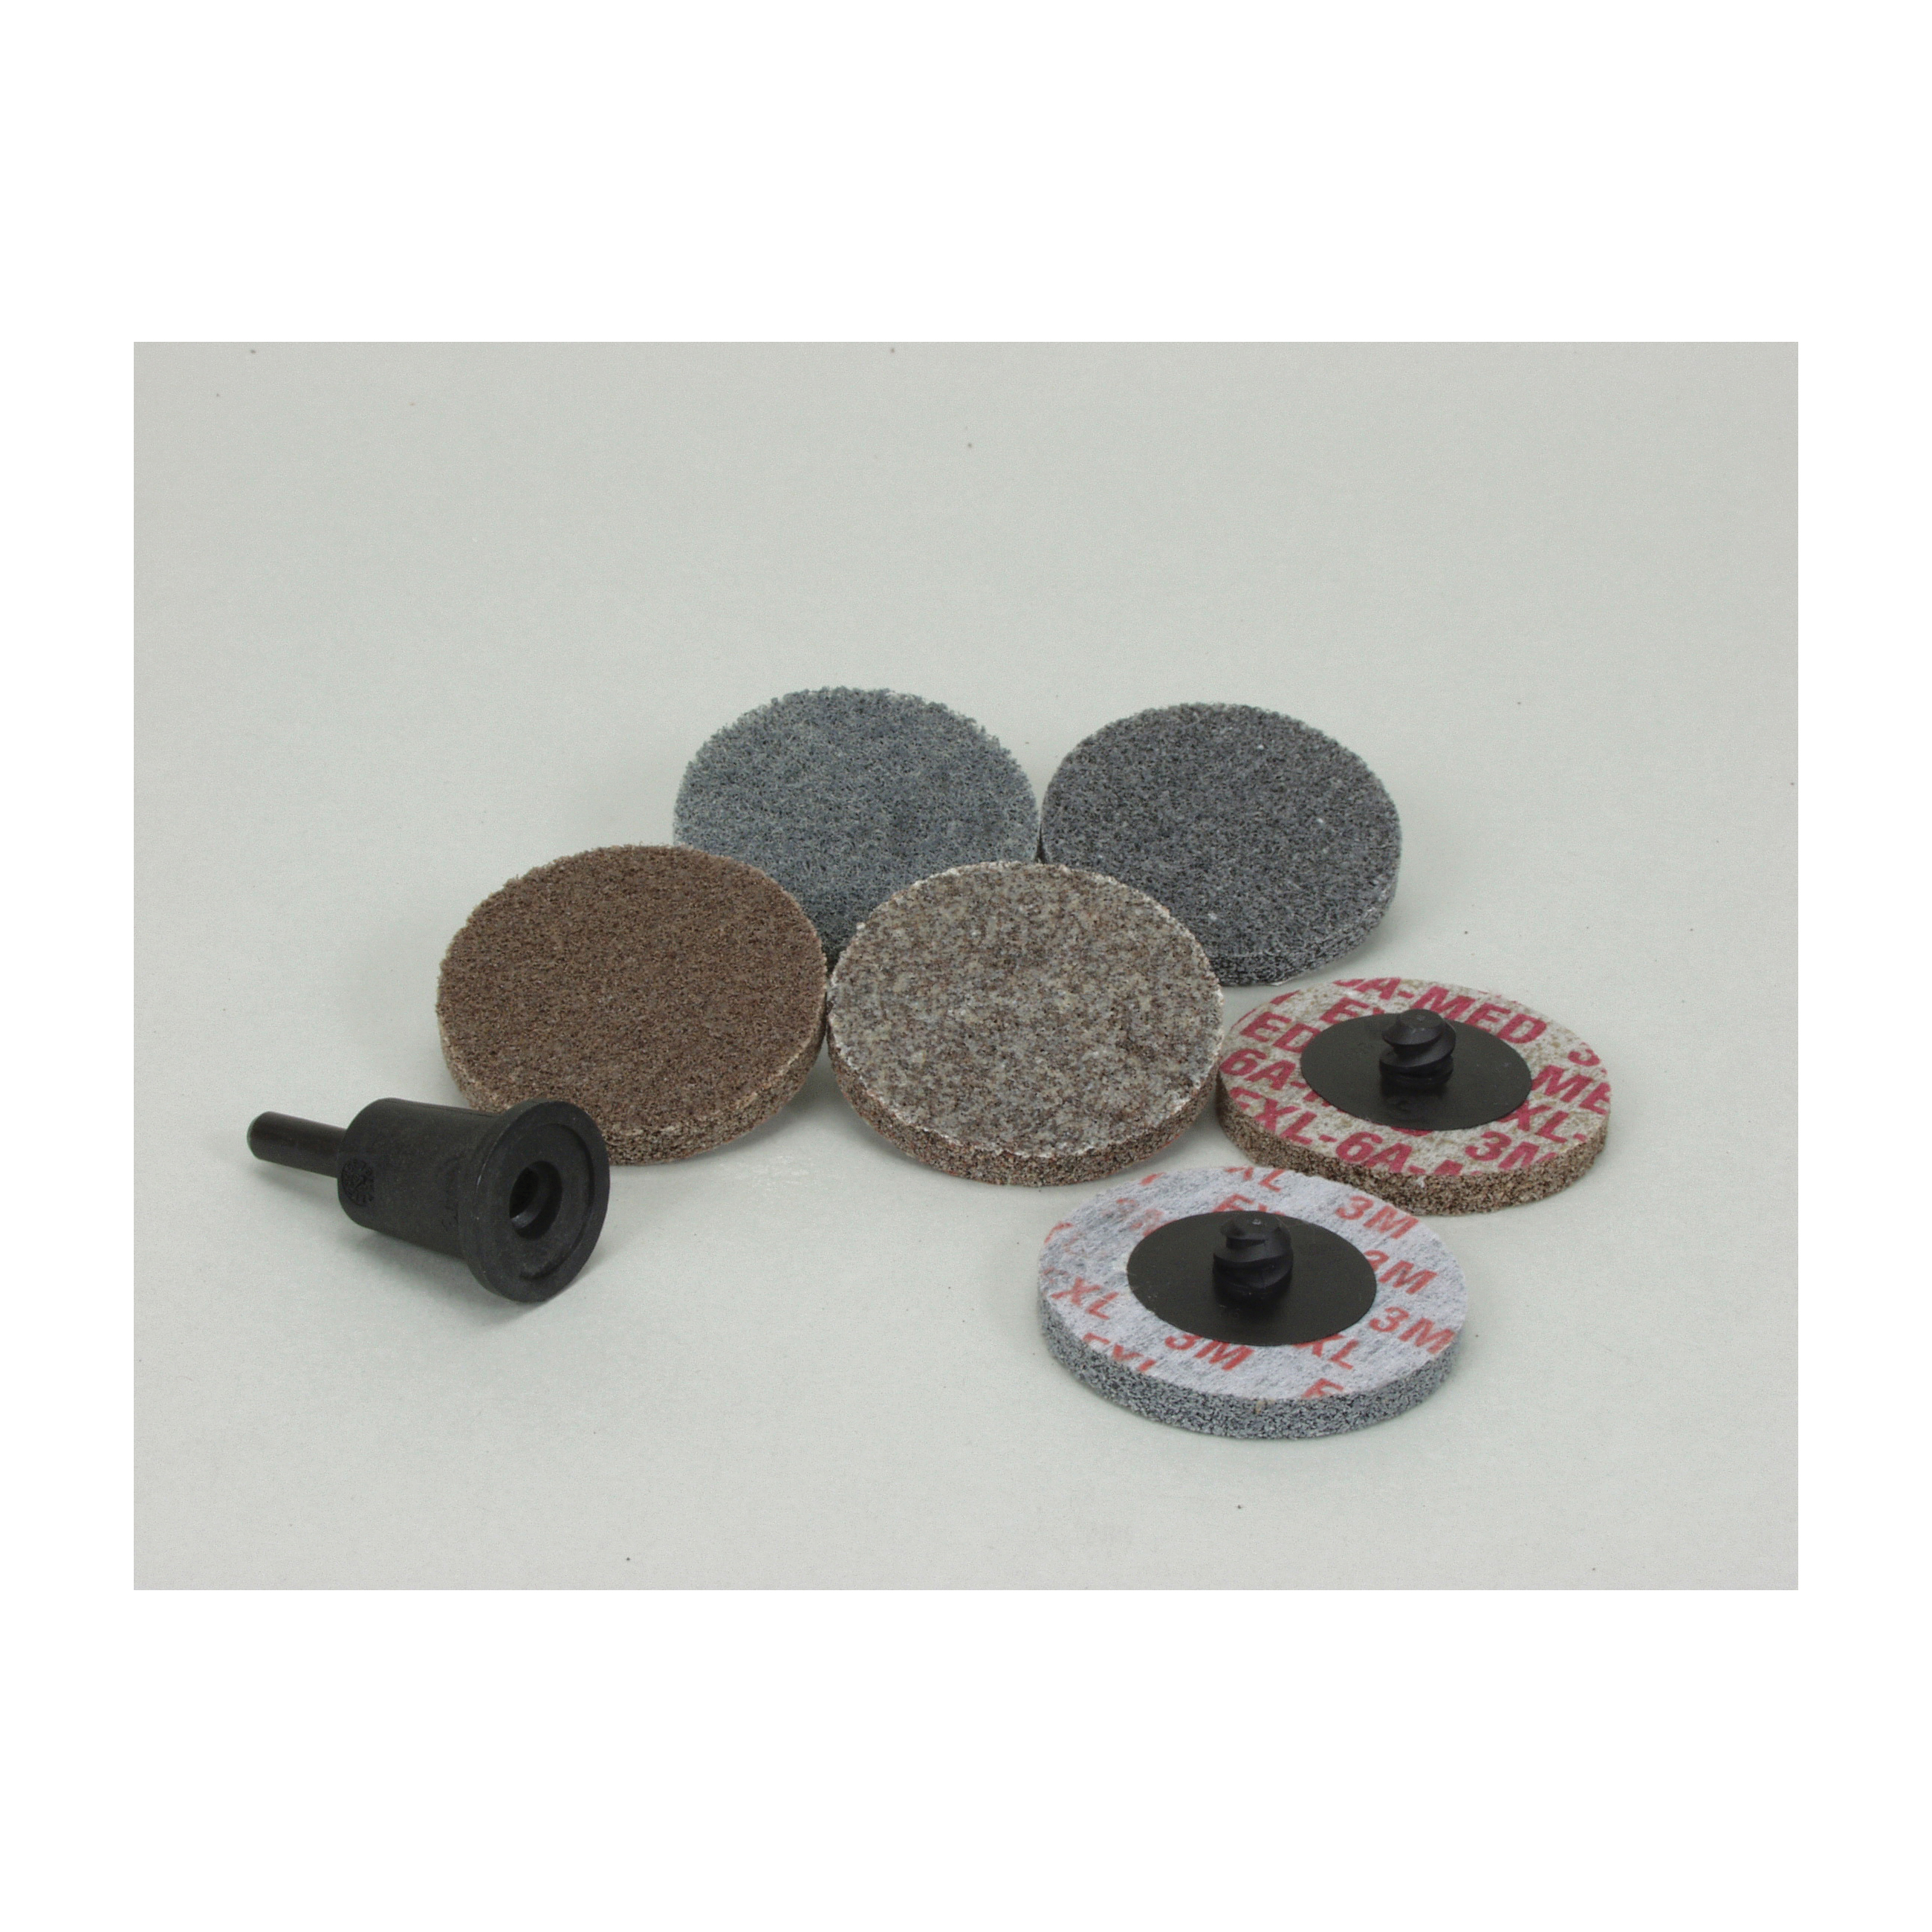 Scotch-Brite™ Roloc™ 048011-17181 987S Quick-Change Unitized Wheel Set, 7 Pieces, Aluminum Oxide/Silicon Carbide Abrasive, 2 in Dia Wheel/Disc, Coarse/Medium Grade, Quick-Change Connector